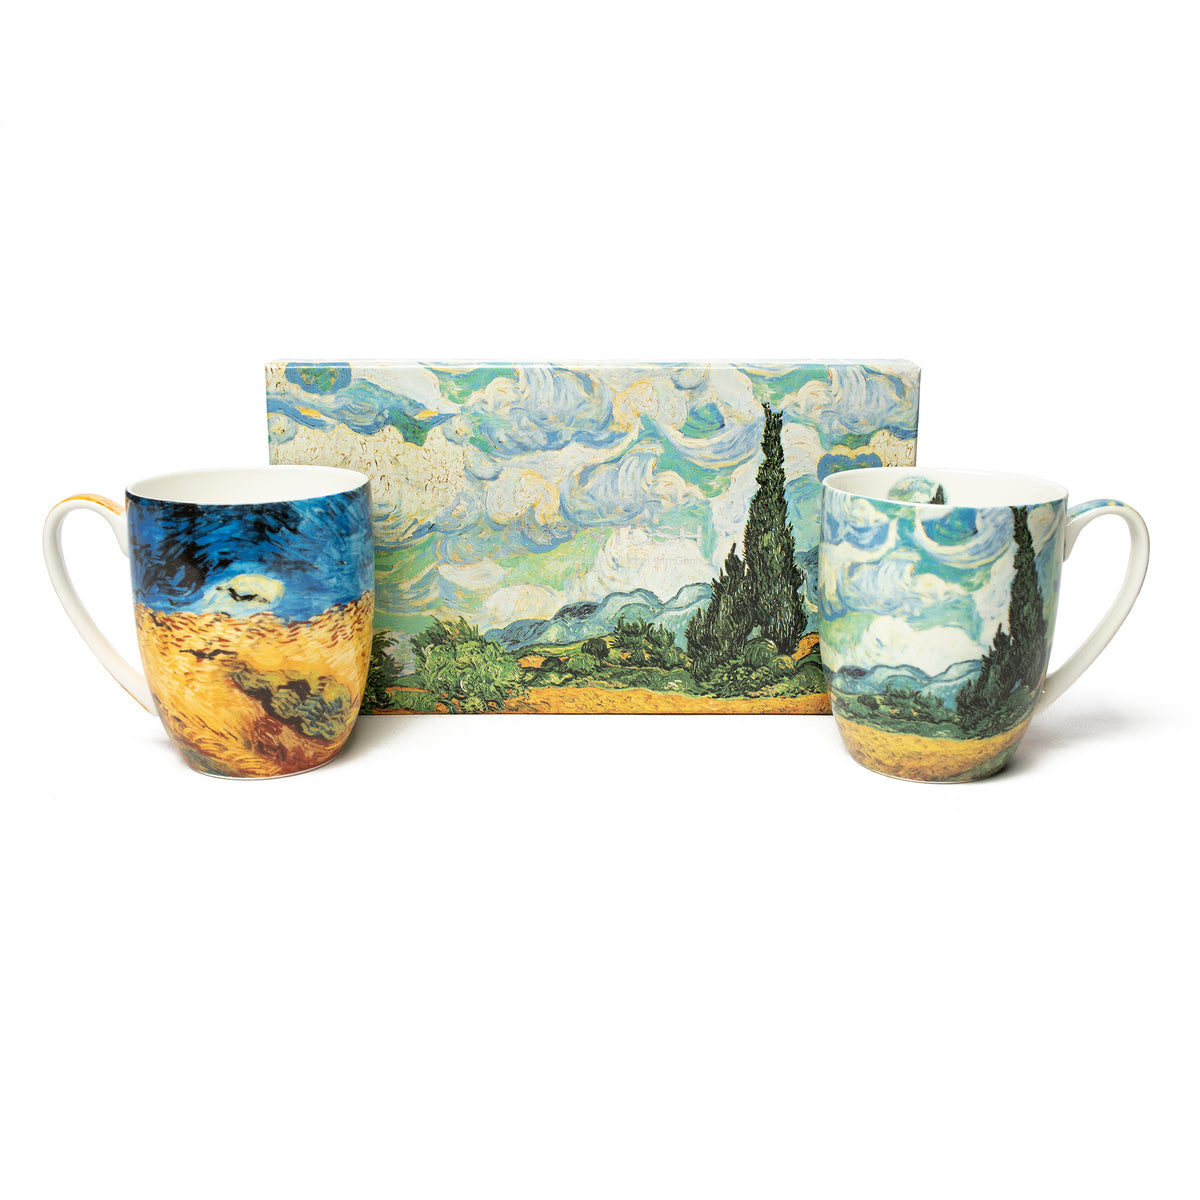 Pair of Fine Bone China Mugs featuring Van Gogh's Wheatfields with Gift Box | Getty Store